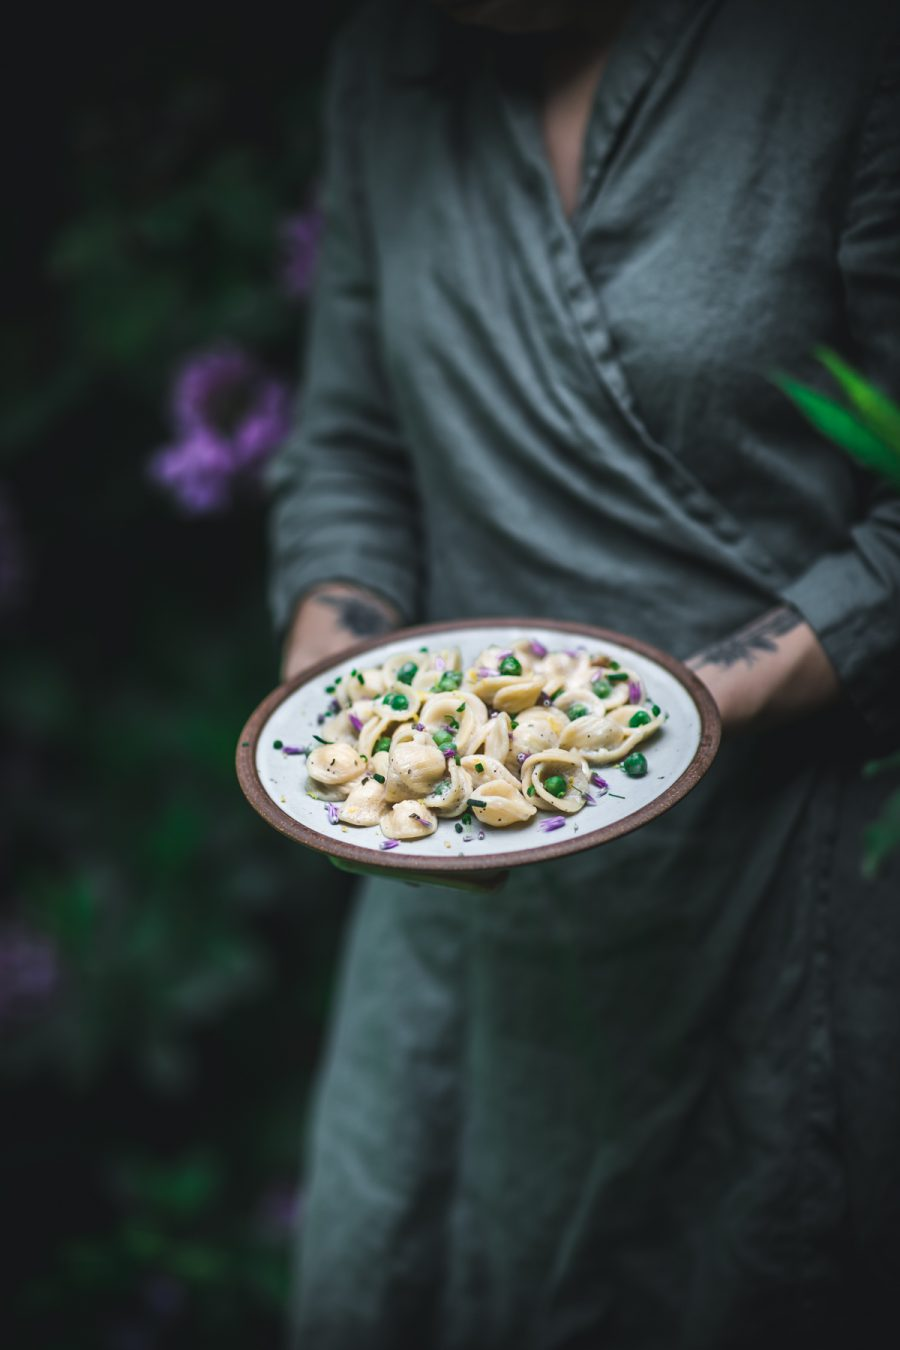 Chive and Chicken Orecchiette in a Rosemary Lemon Sauce